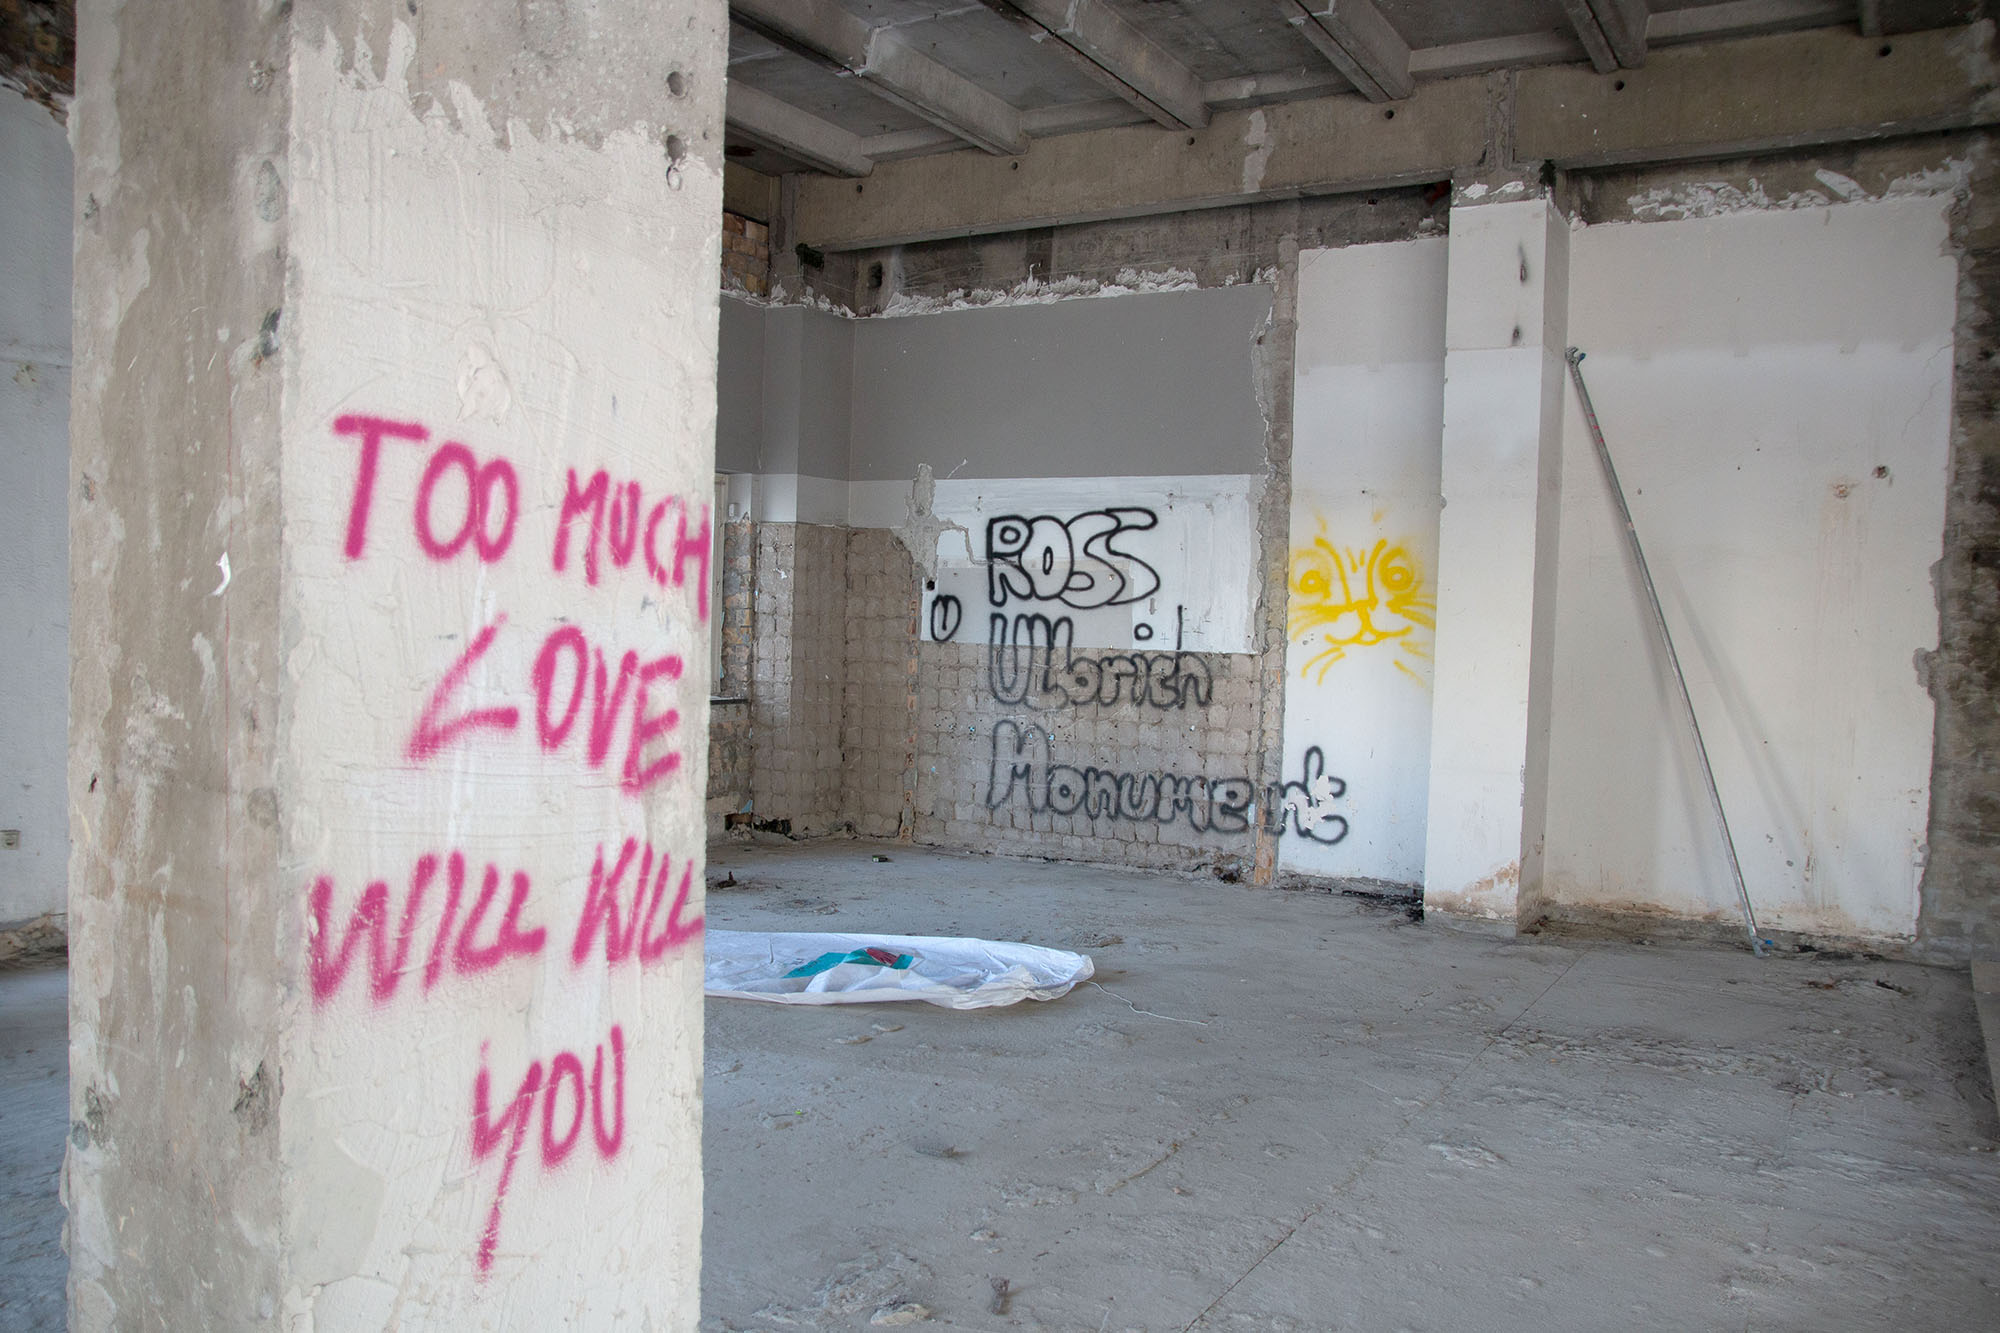 To much love will kill you. Allesandersplatz - das ehemalige Haus der Statistik / Foto: Ingo Paszkowsky